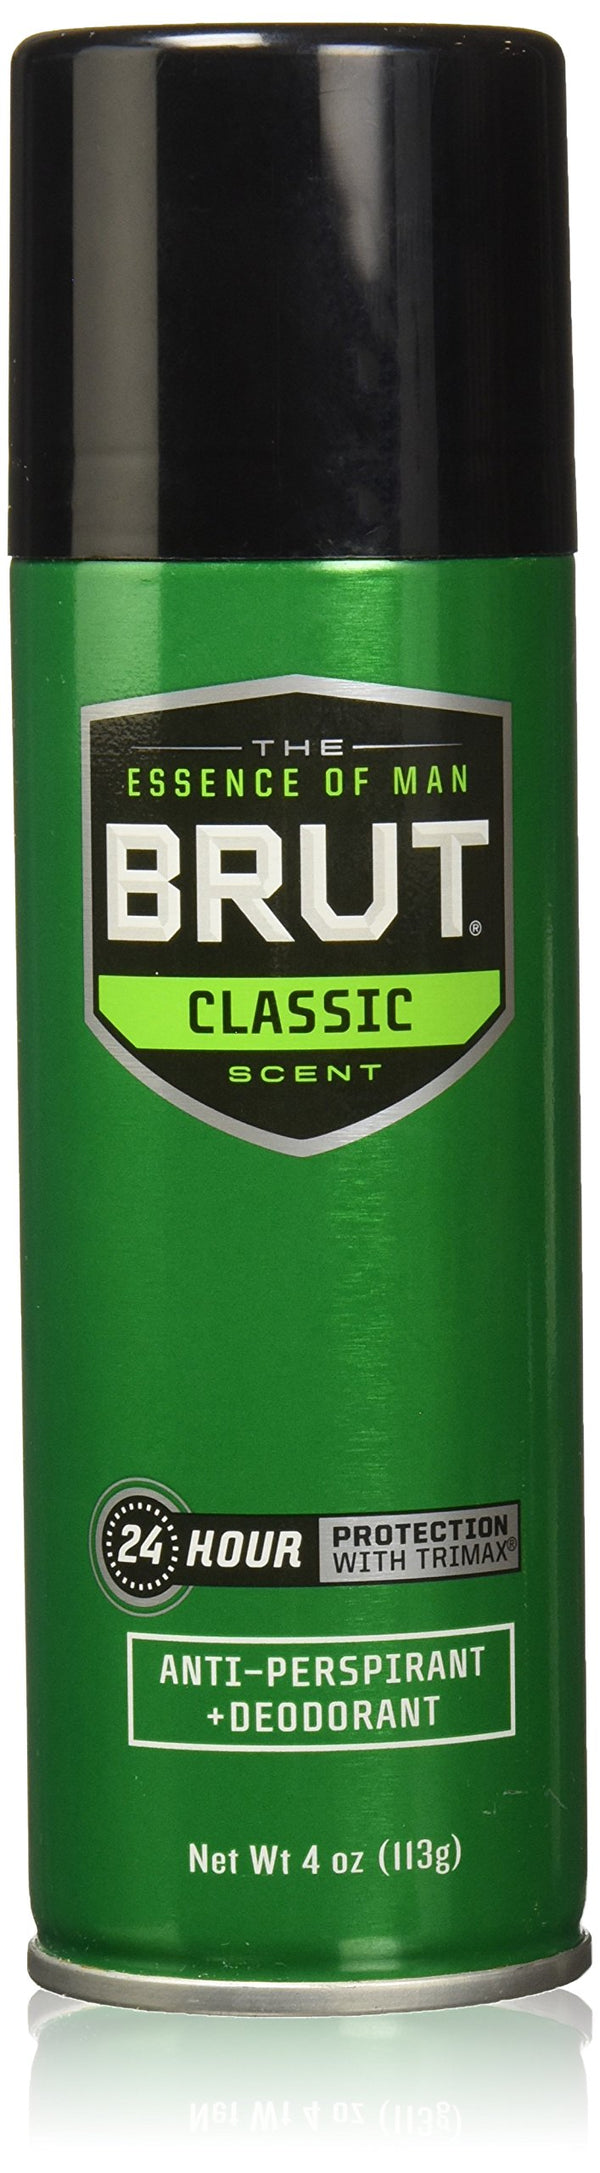 Brut Men Deodorant Aerosol Classic Scent Spray(Anti-Perspirant), 4 Ounce